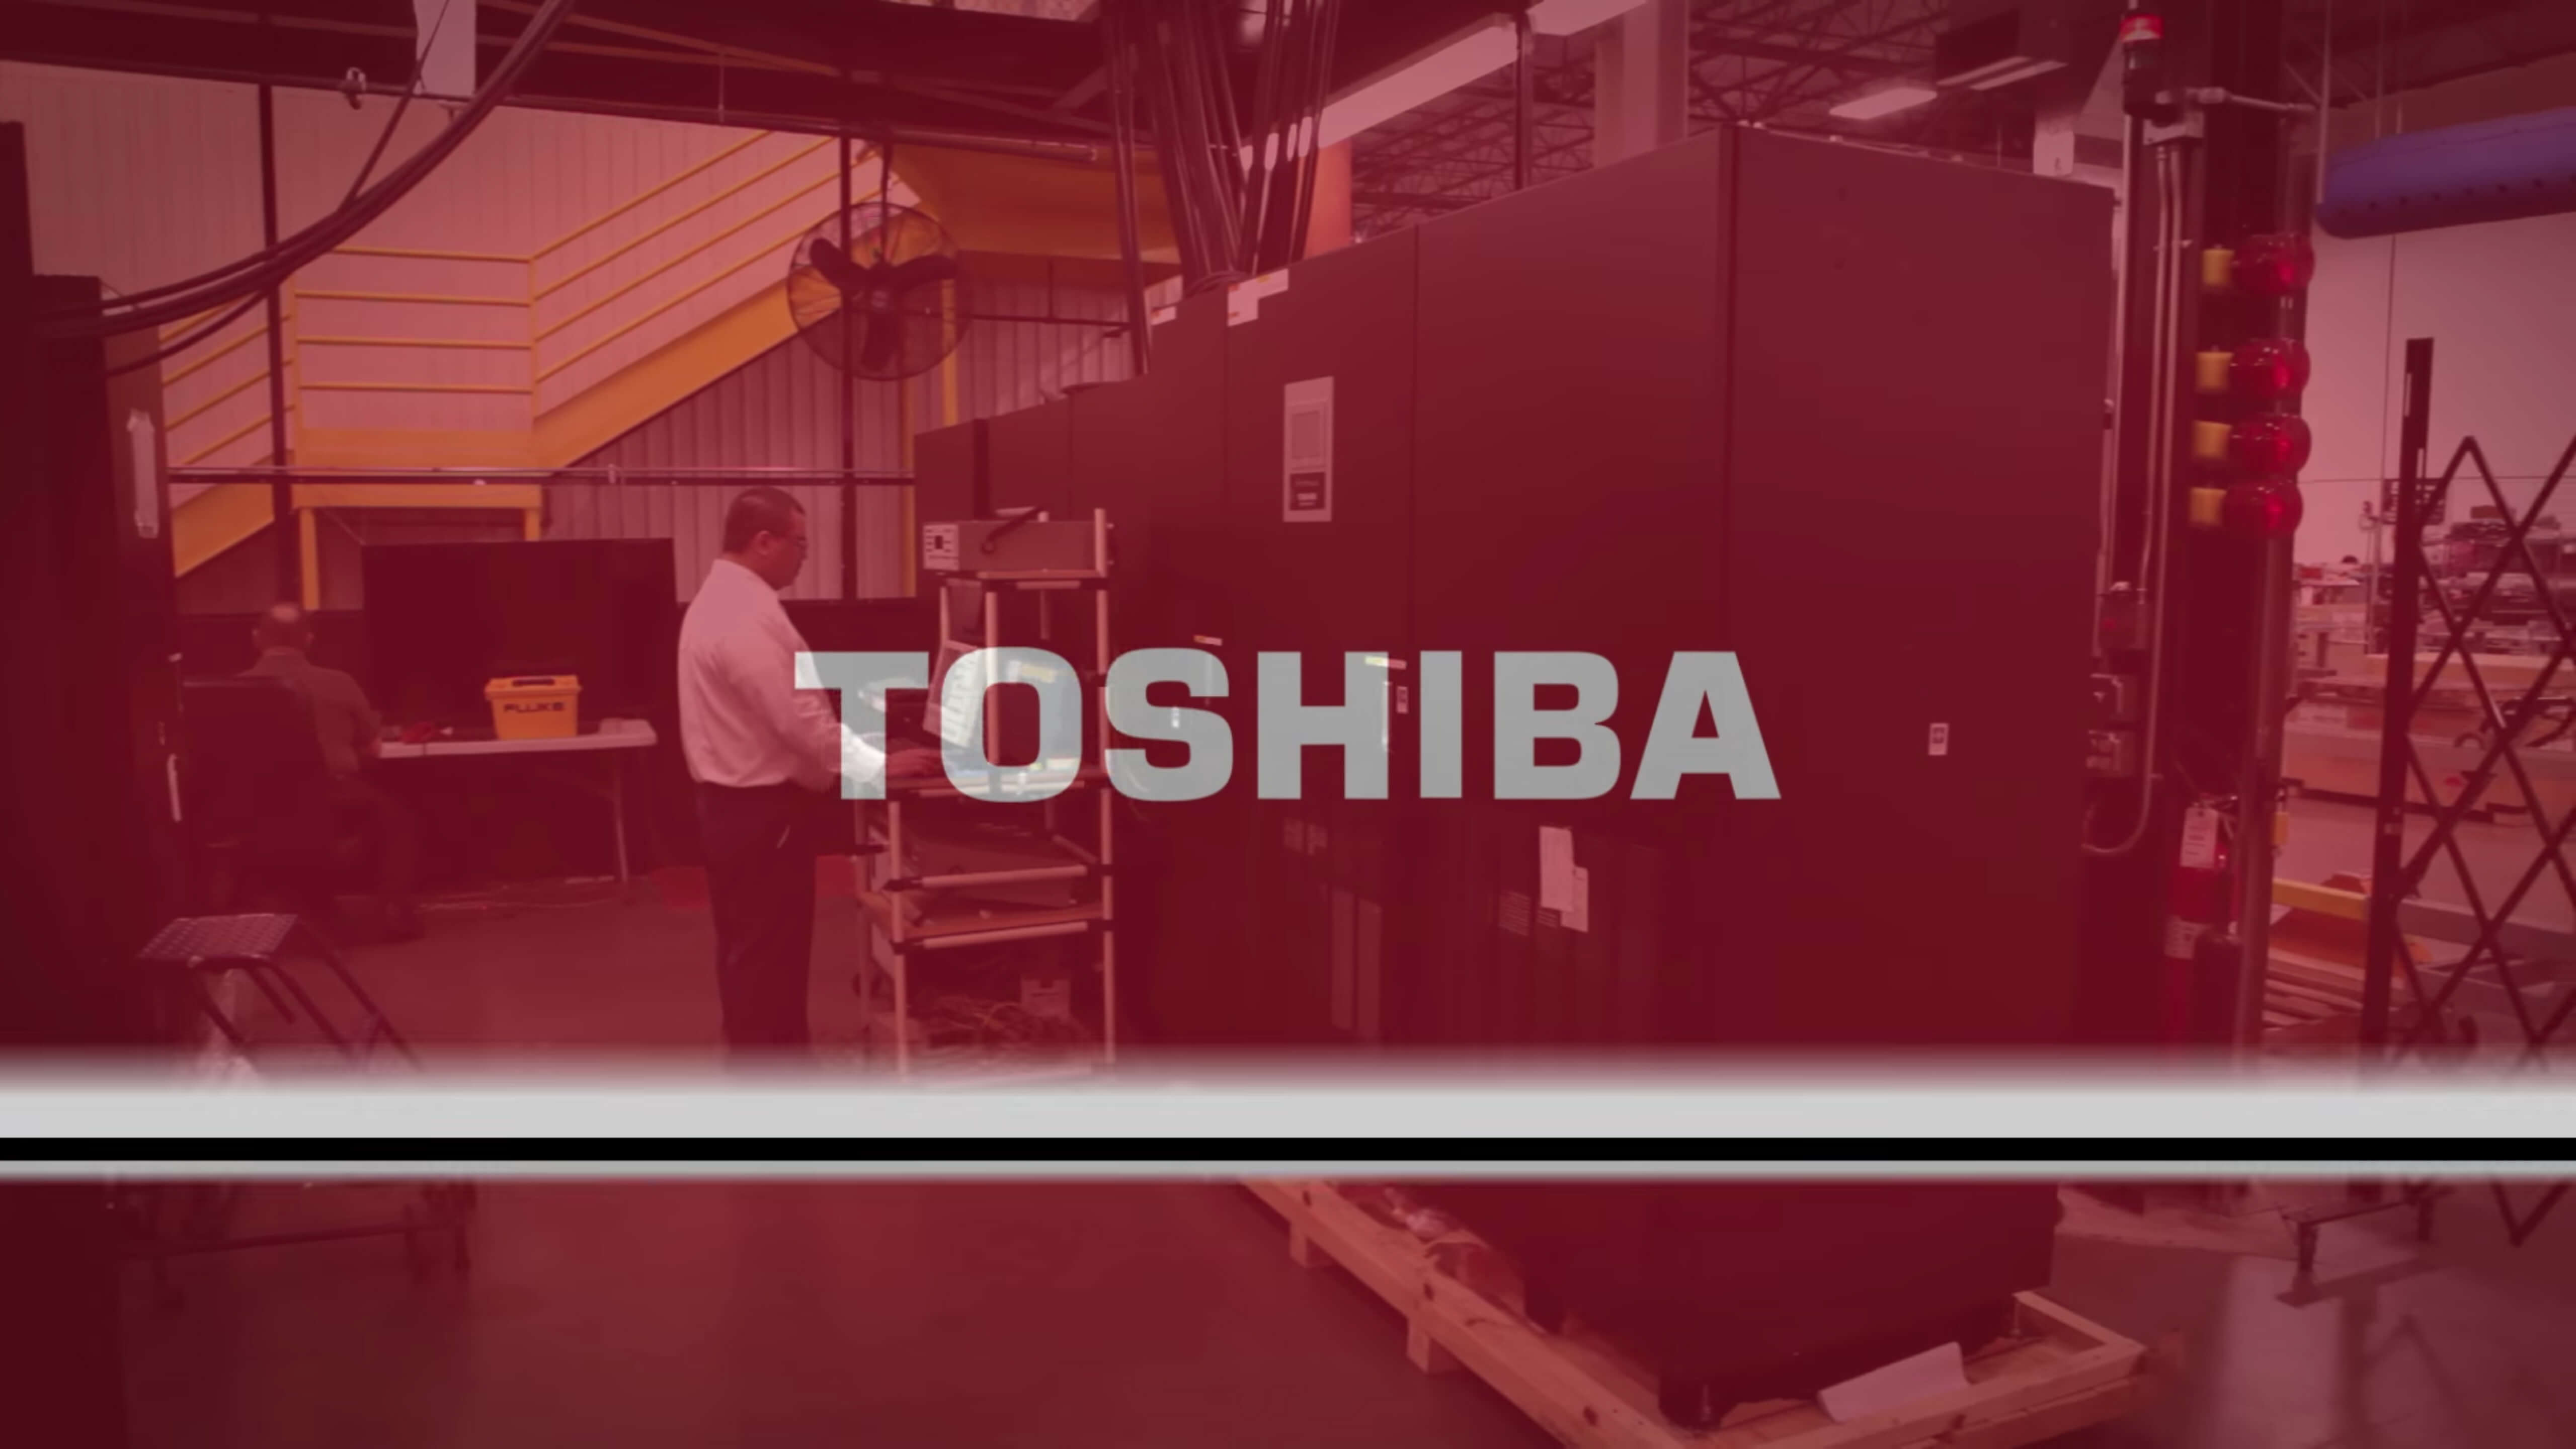 Toshiba Uninterruptible Power Systems Overview